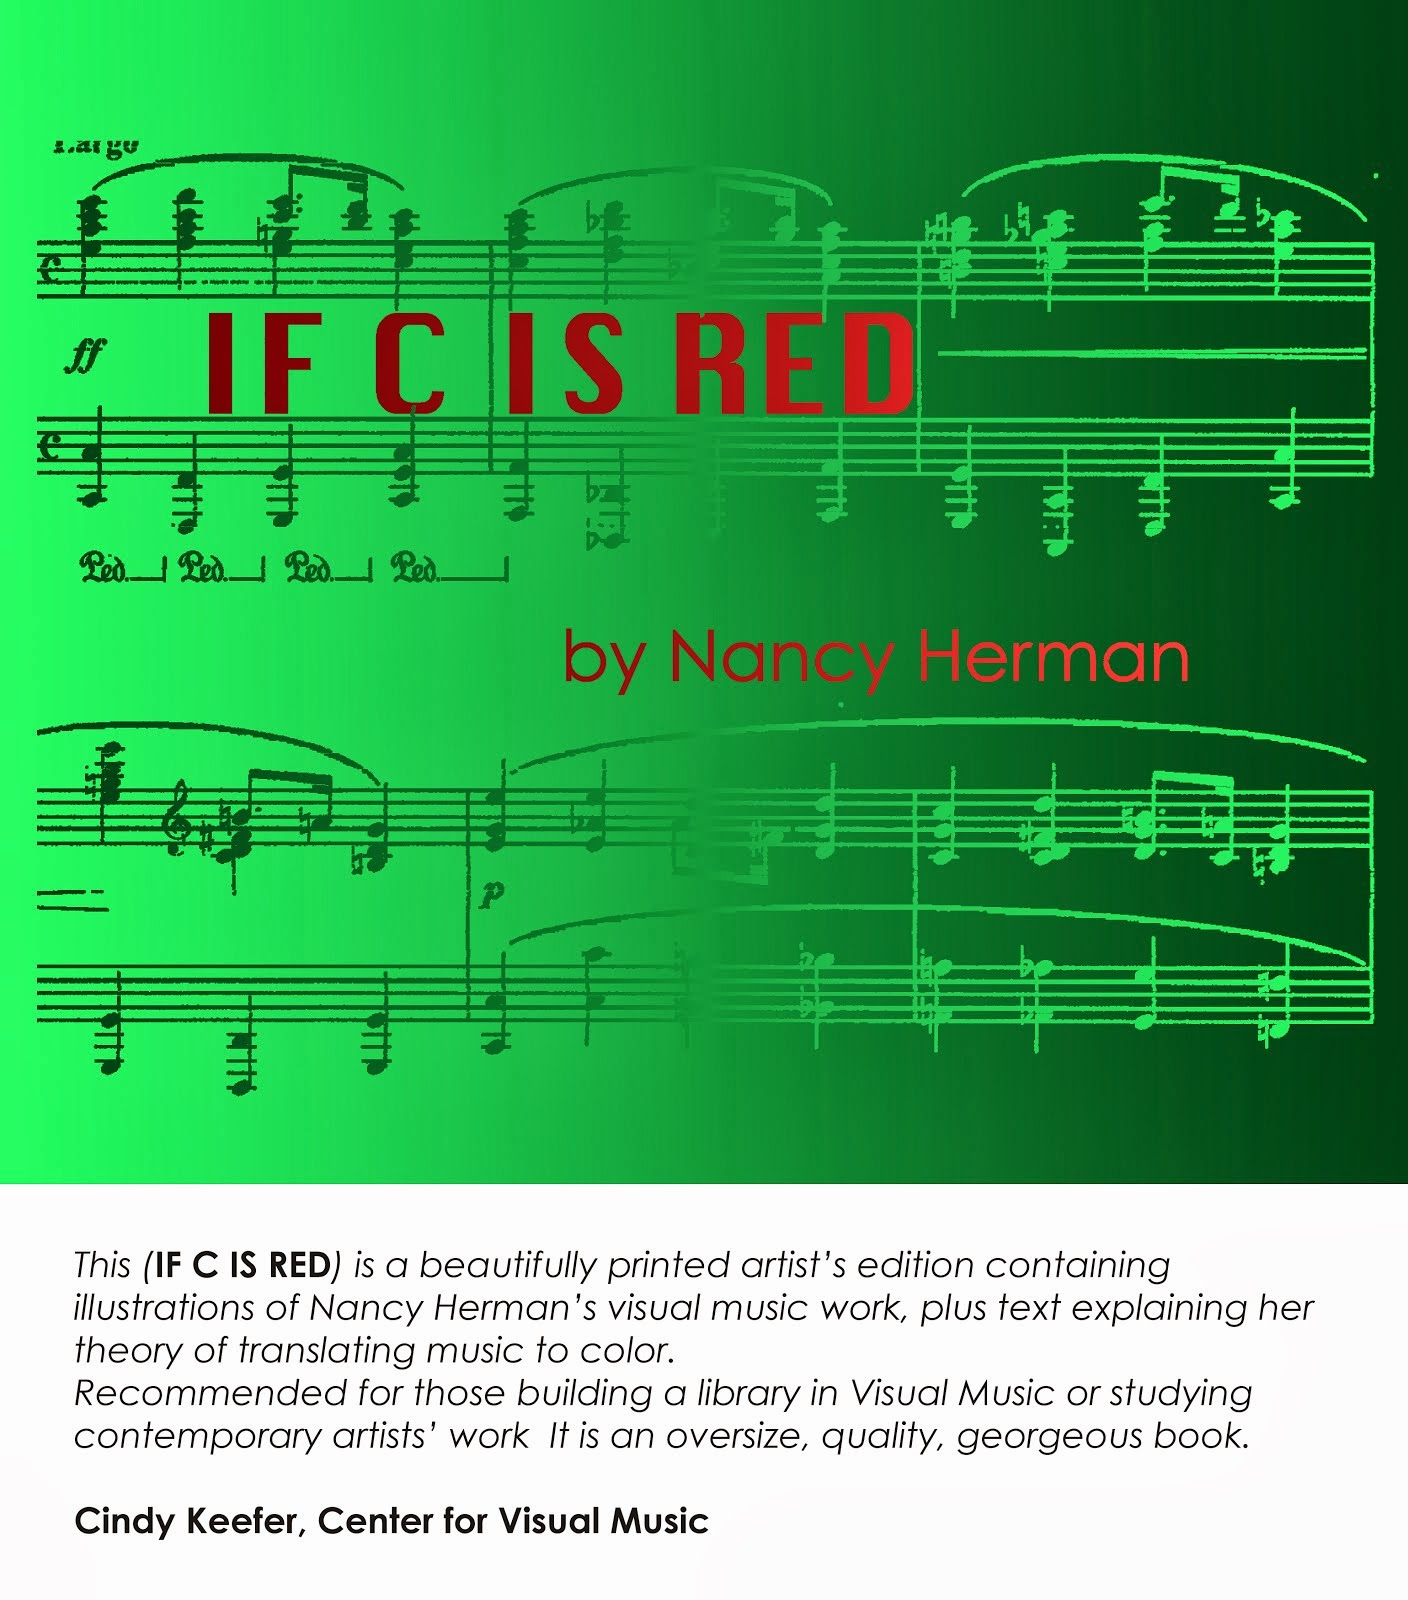 Nancy Herman's Book: IF C IS RED